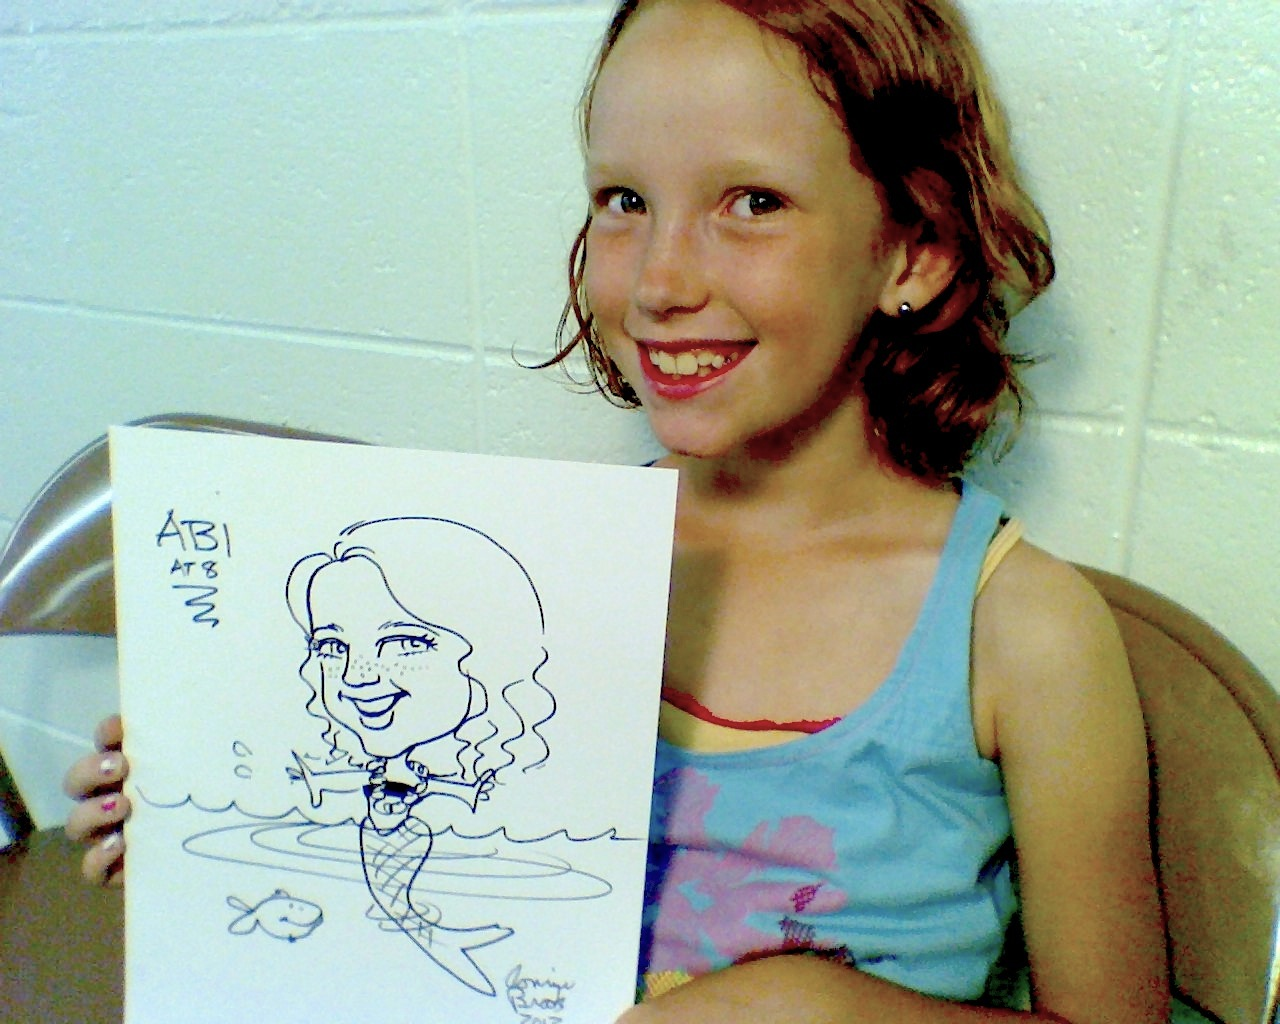 Abi mermaid caricature